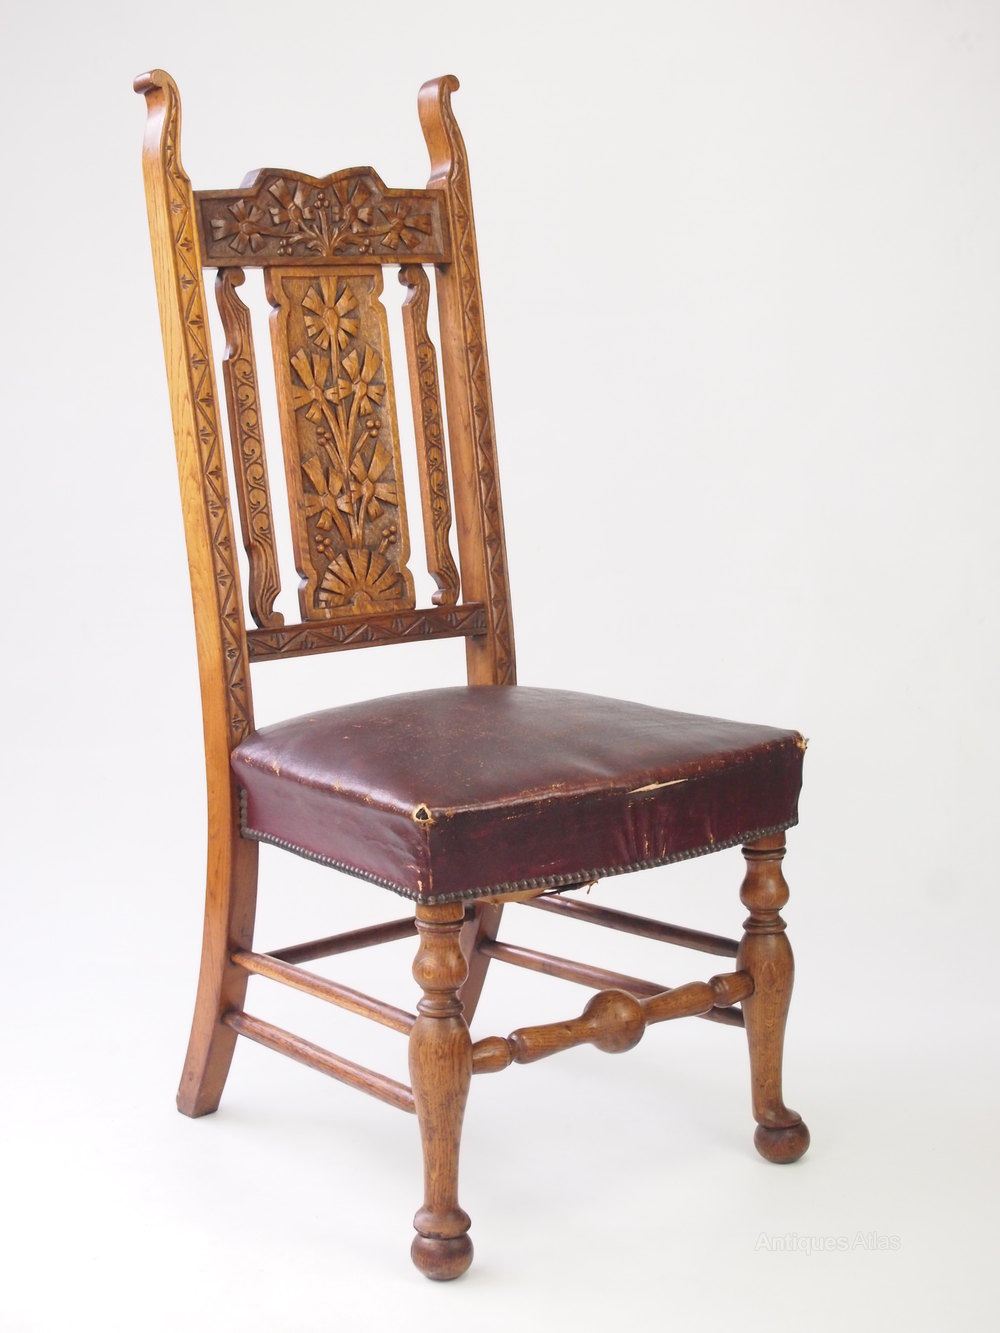 Antique Carved Oak High Back Chair Hall Chair Antique Hall Chairs ... - Antique Carved Oak High Back Chair Hall Chair - Antiques Atlas